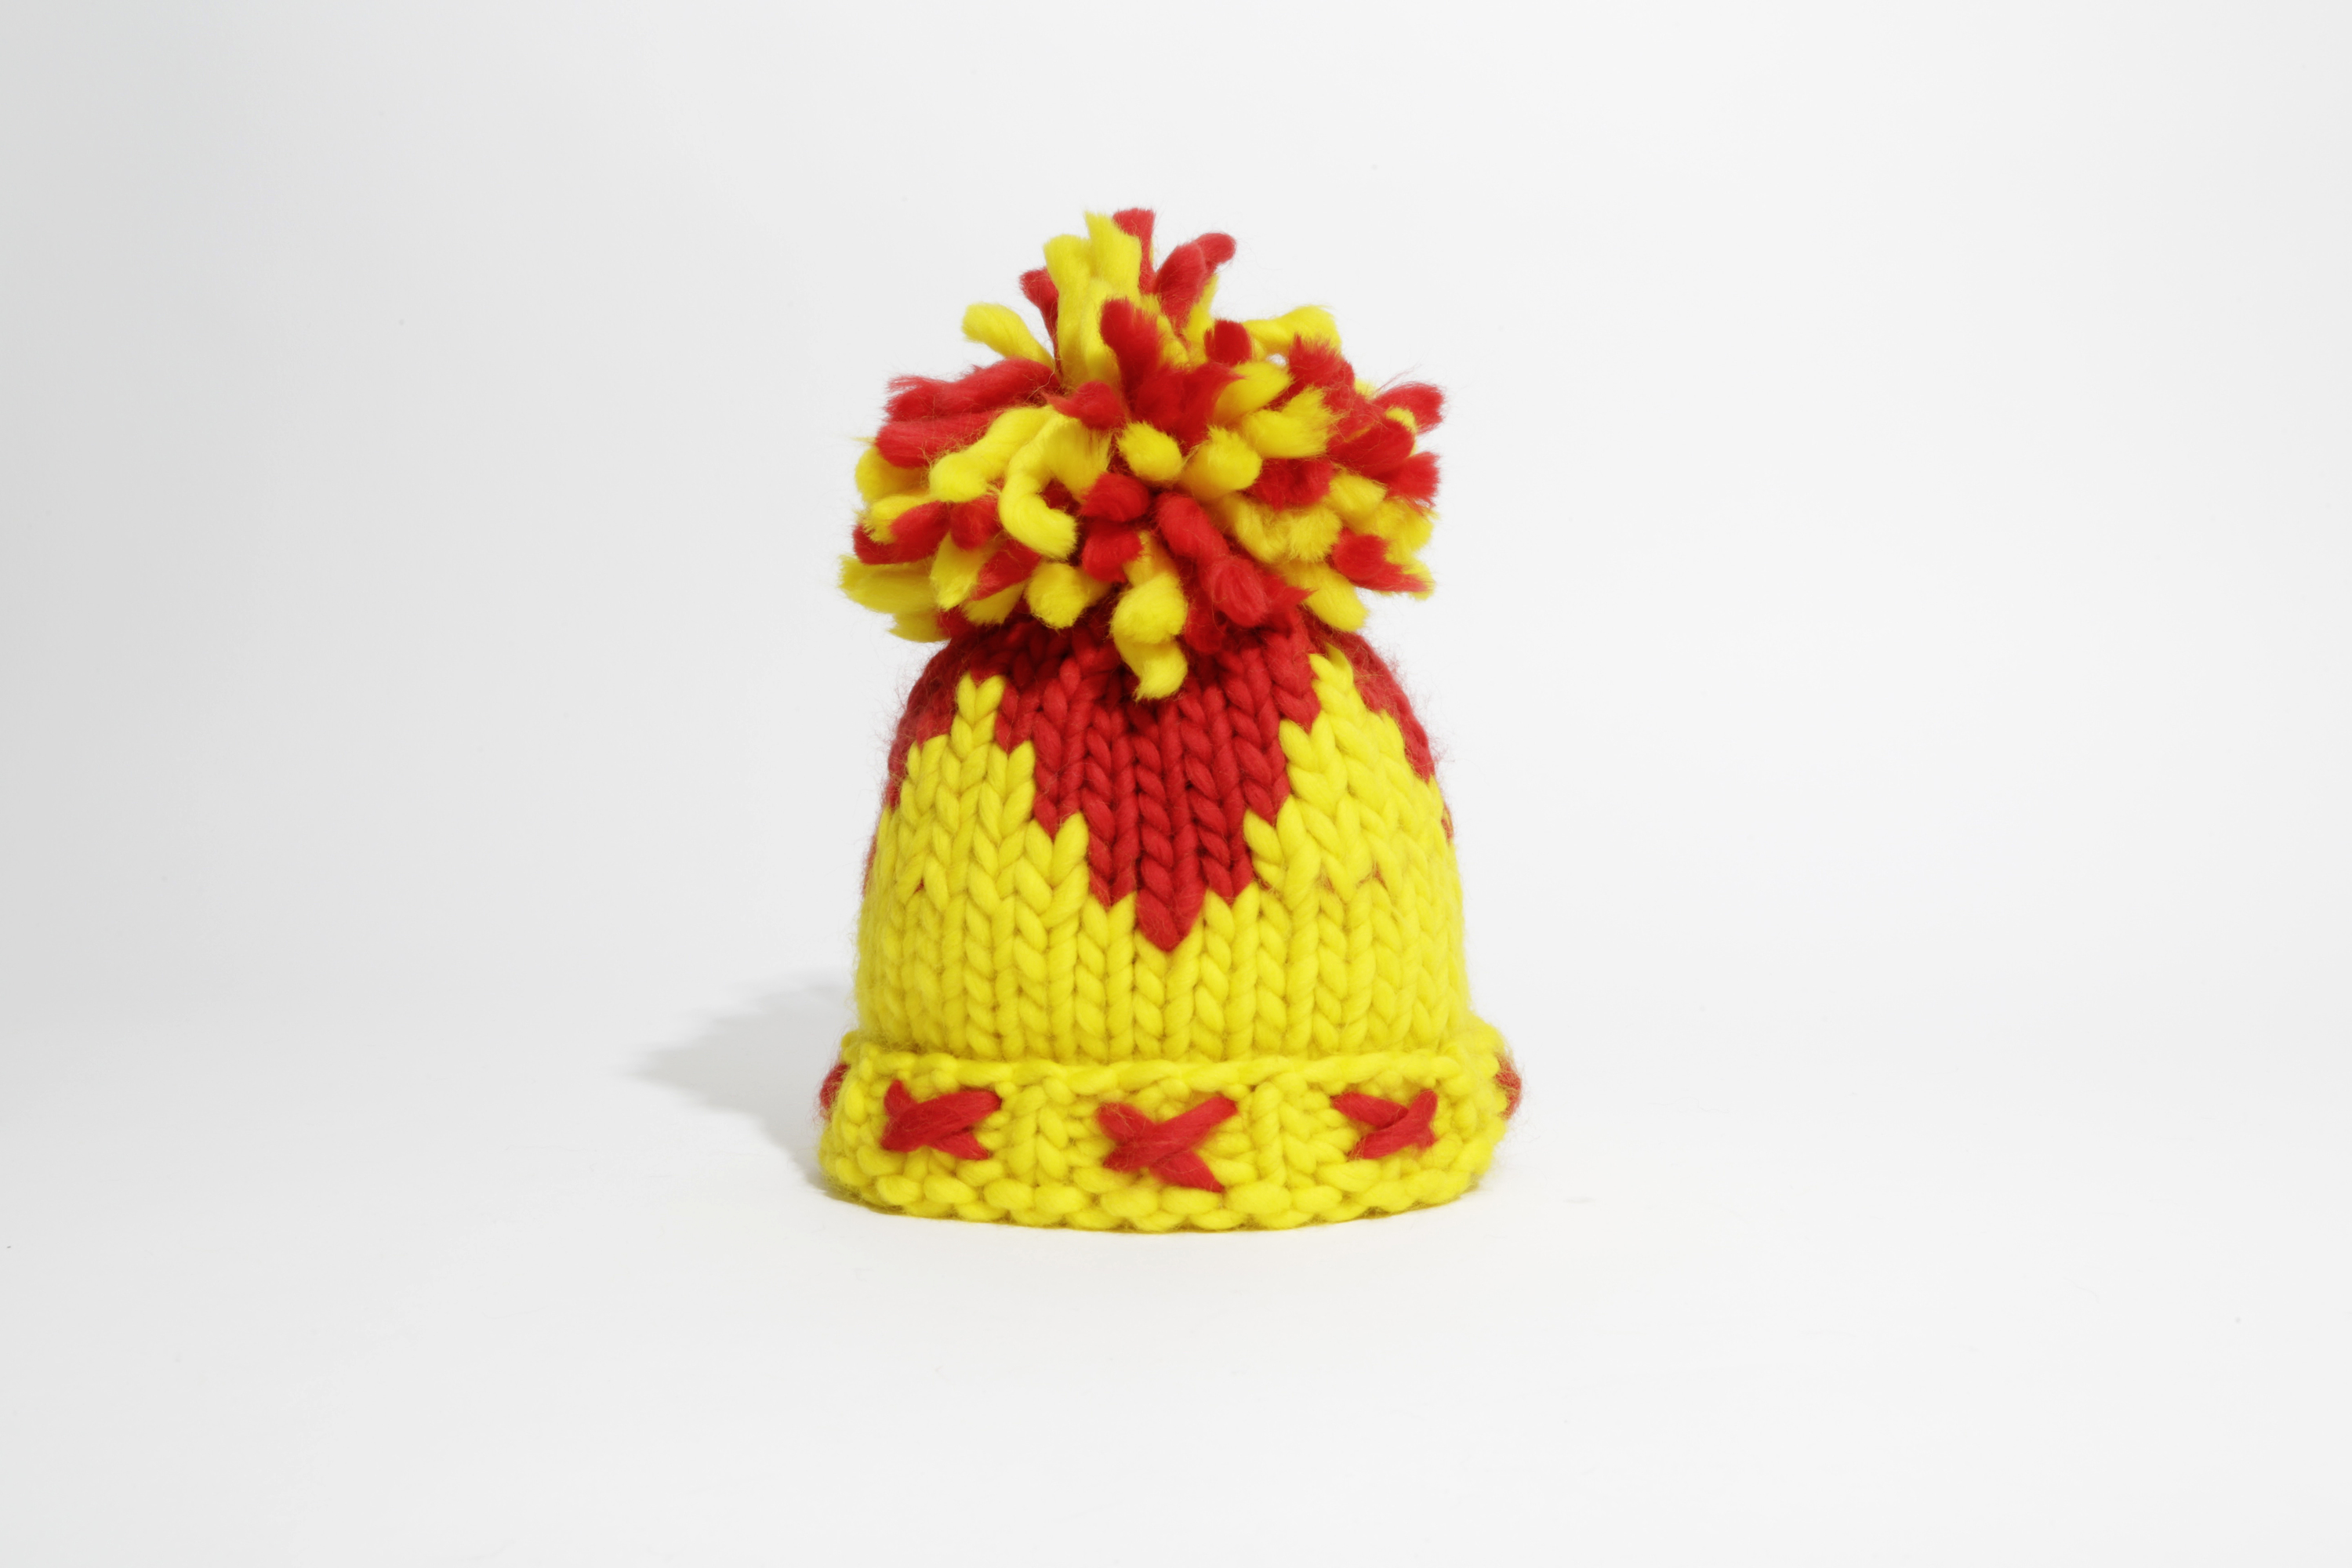 Charitable Christmas gifts: Wool and the Gang Vivienne Westwood hat